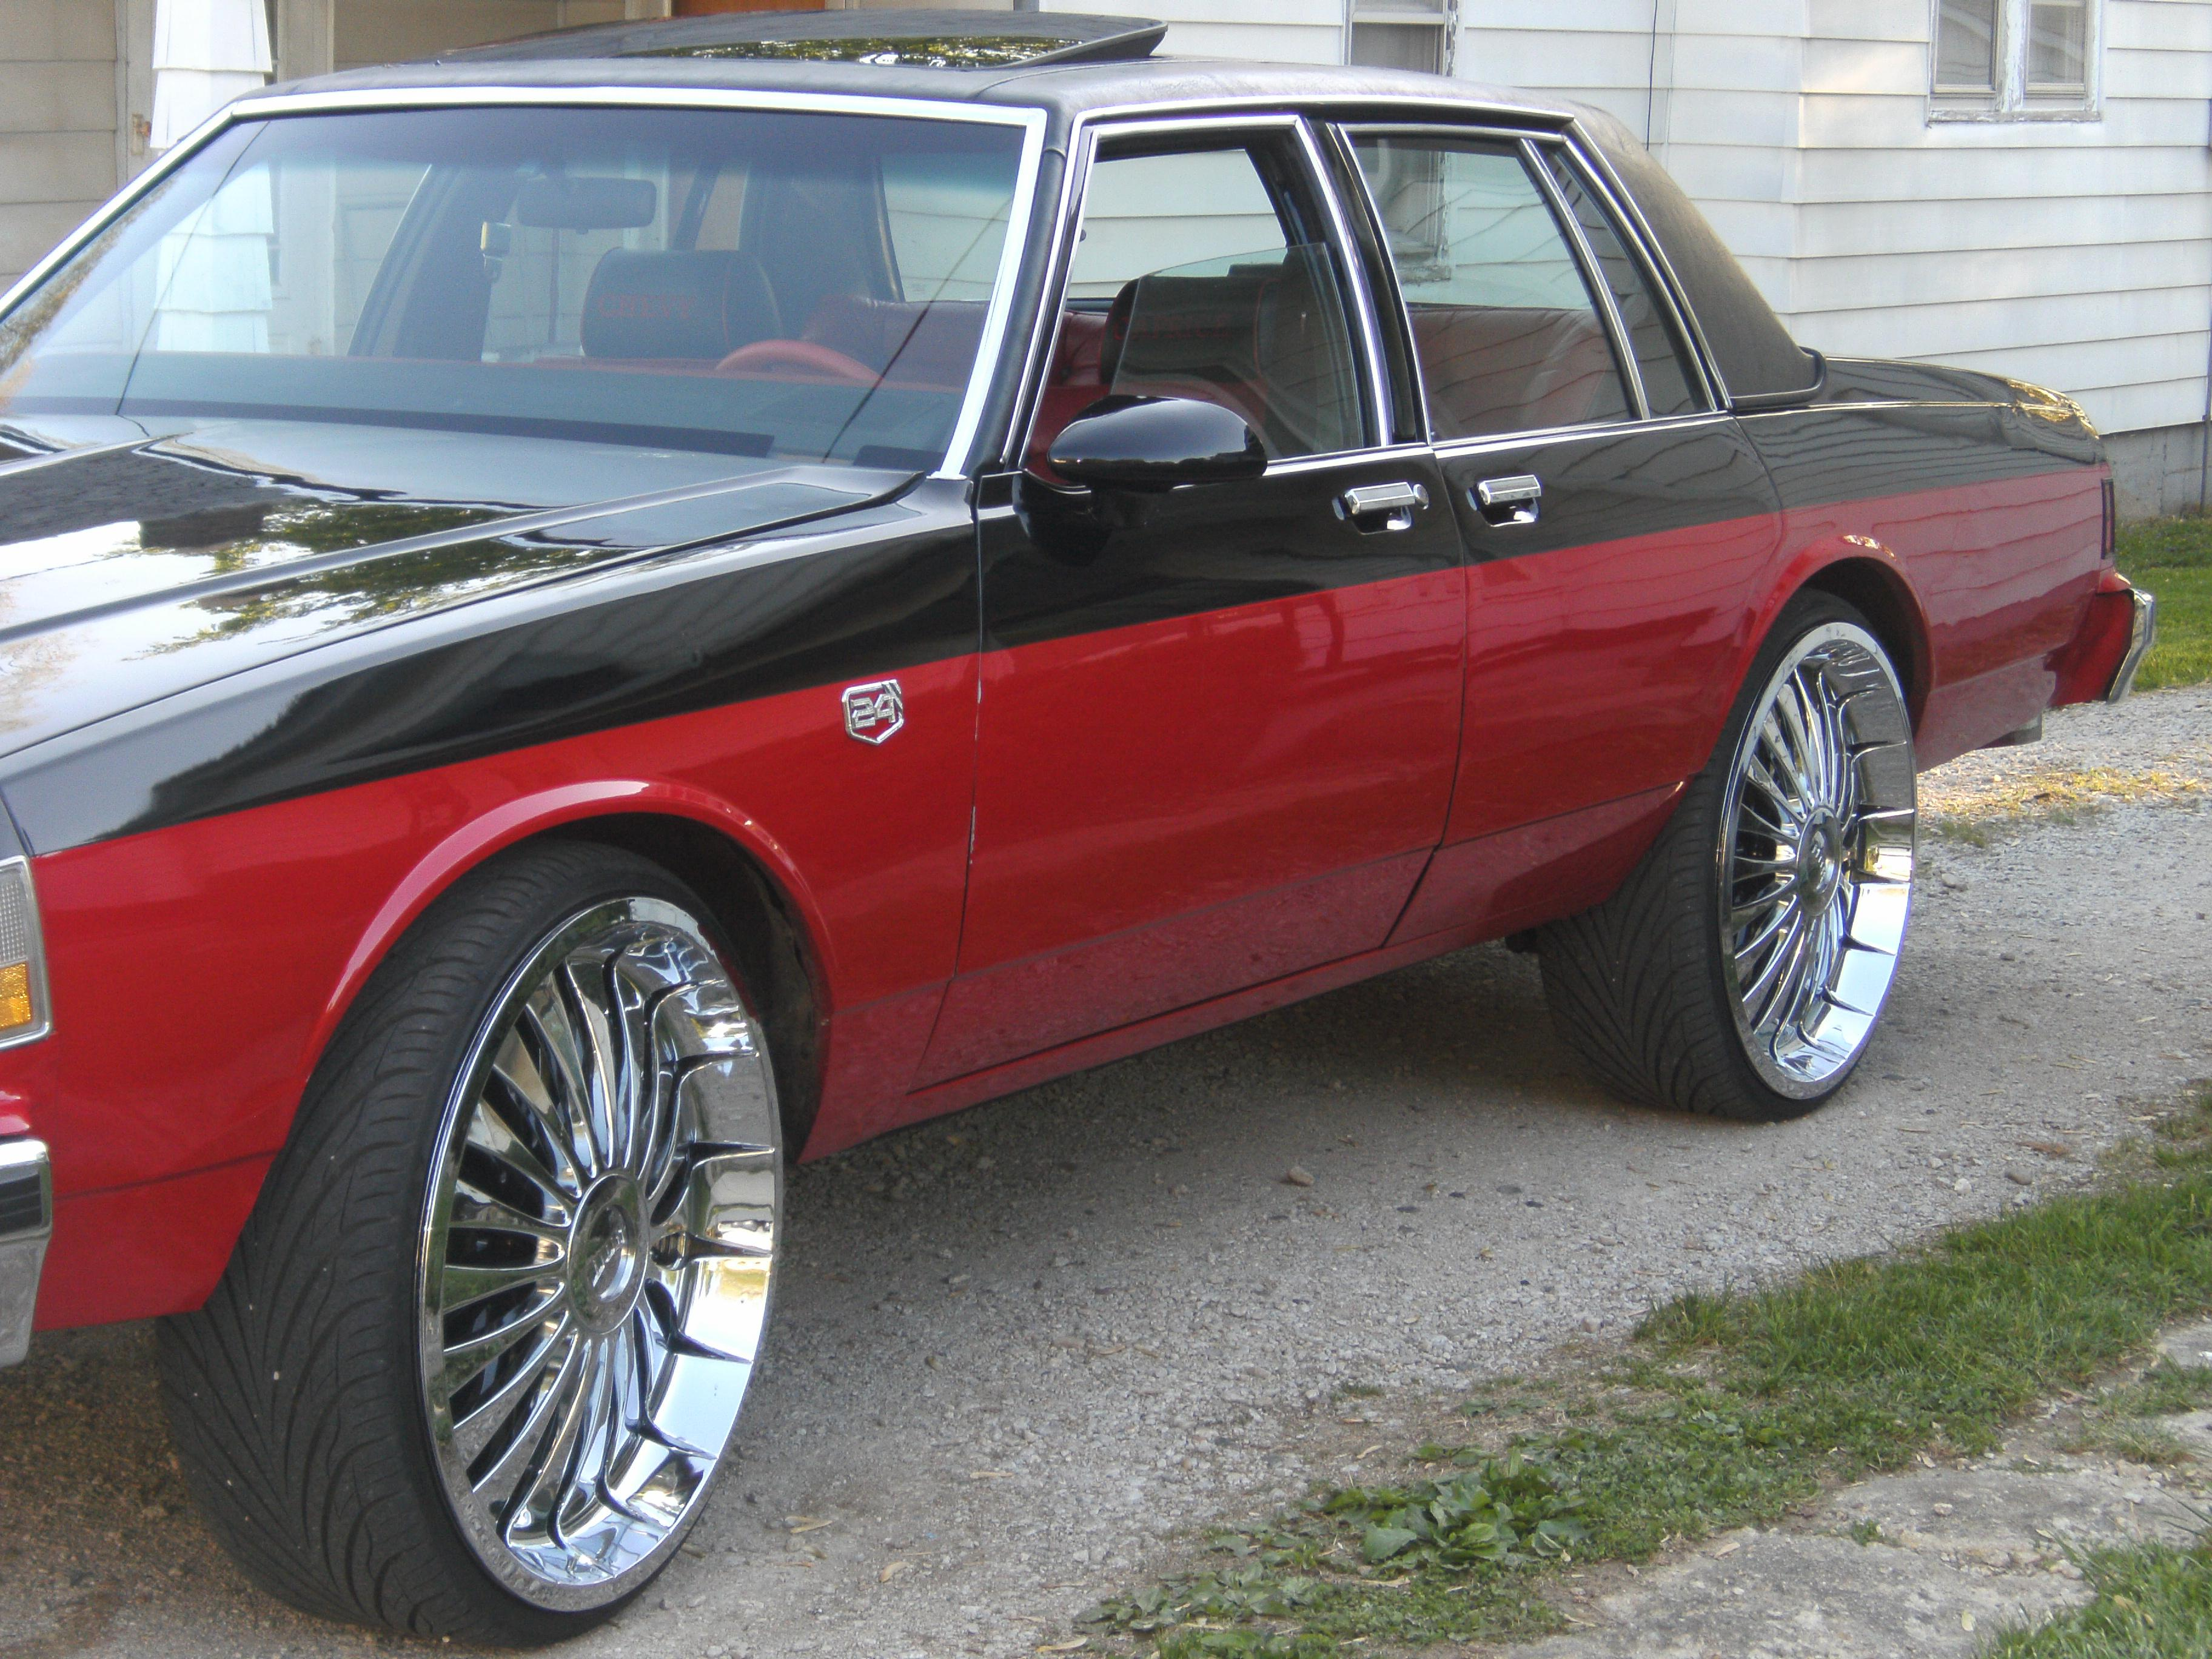 coollyme2 1987 Chevrolet Caprice